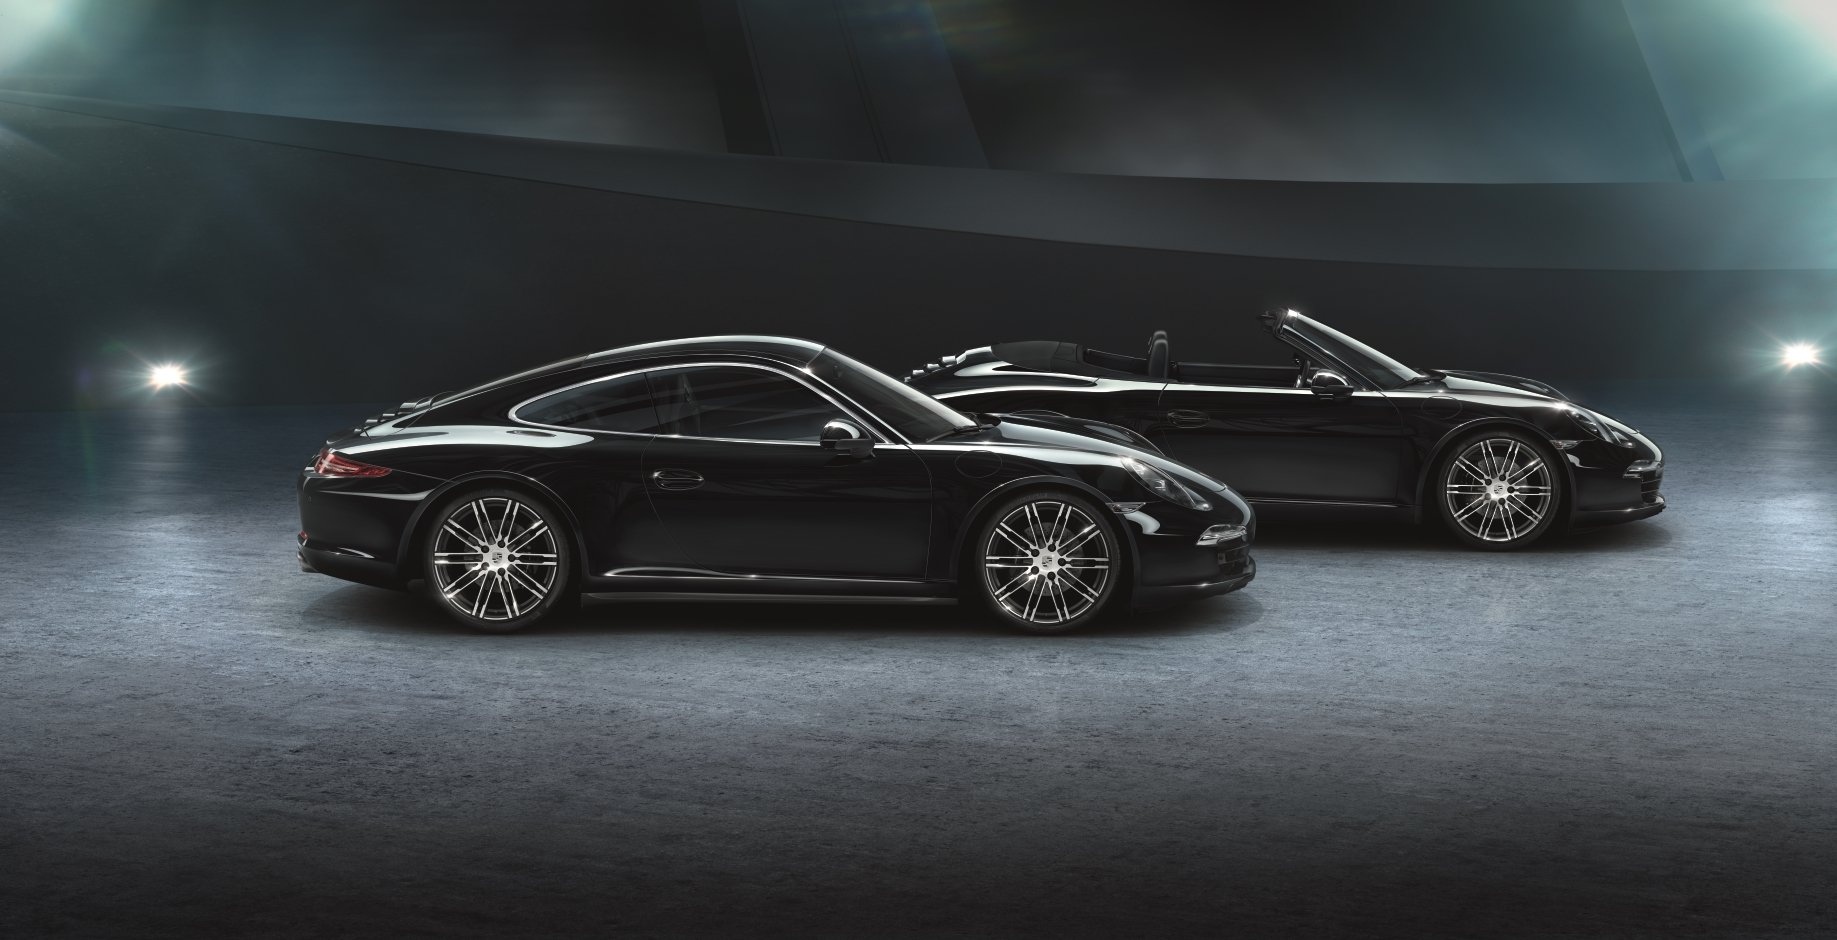 The new 911 Carrera Black Editions